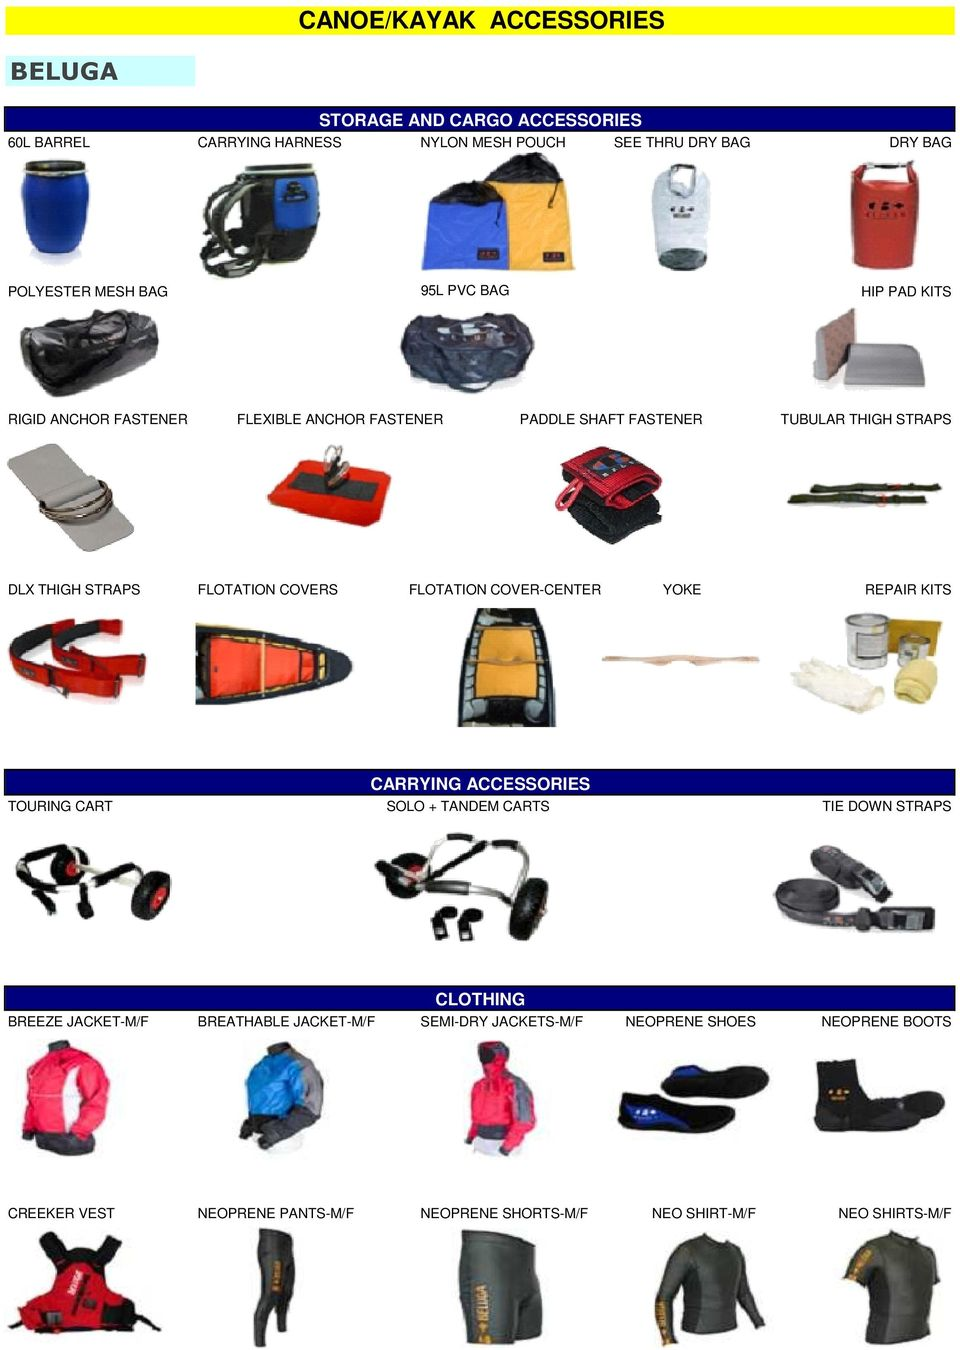 COVERS FLOTATION COVER-CENTER YOKE REPAIR KITS CARRYING ACCESSORIES TOURING CART SOLO + TANDEM CARTS TIE DOWN STRAPS CLOTHING BREEZE JACKET-M/F